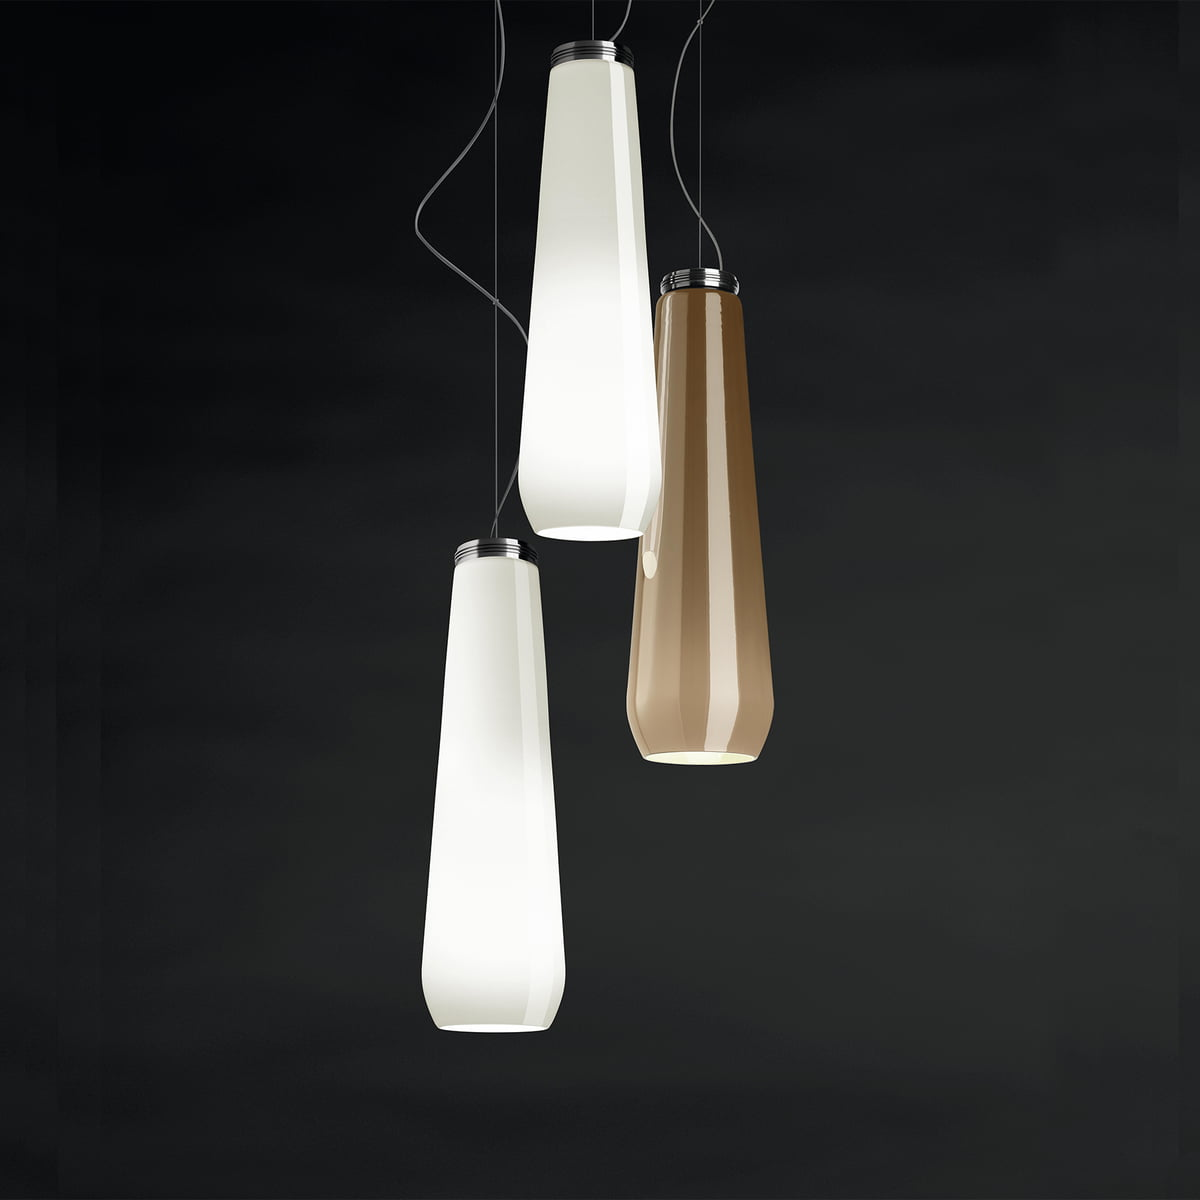 drop pendant lighting. The Glass Drop Pendant Lamp By Diesel Living Lighting T